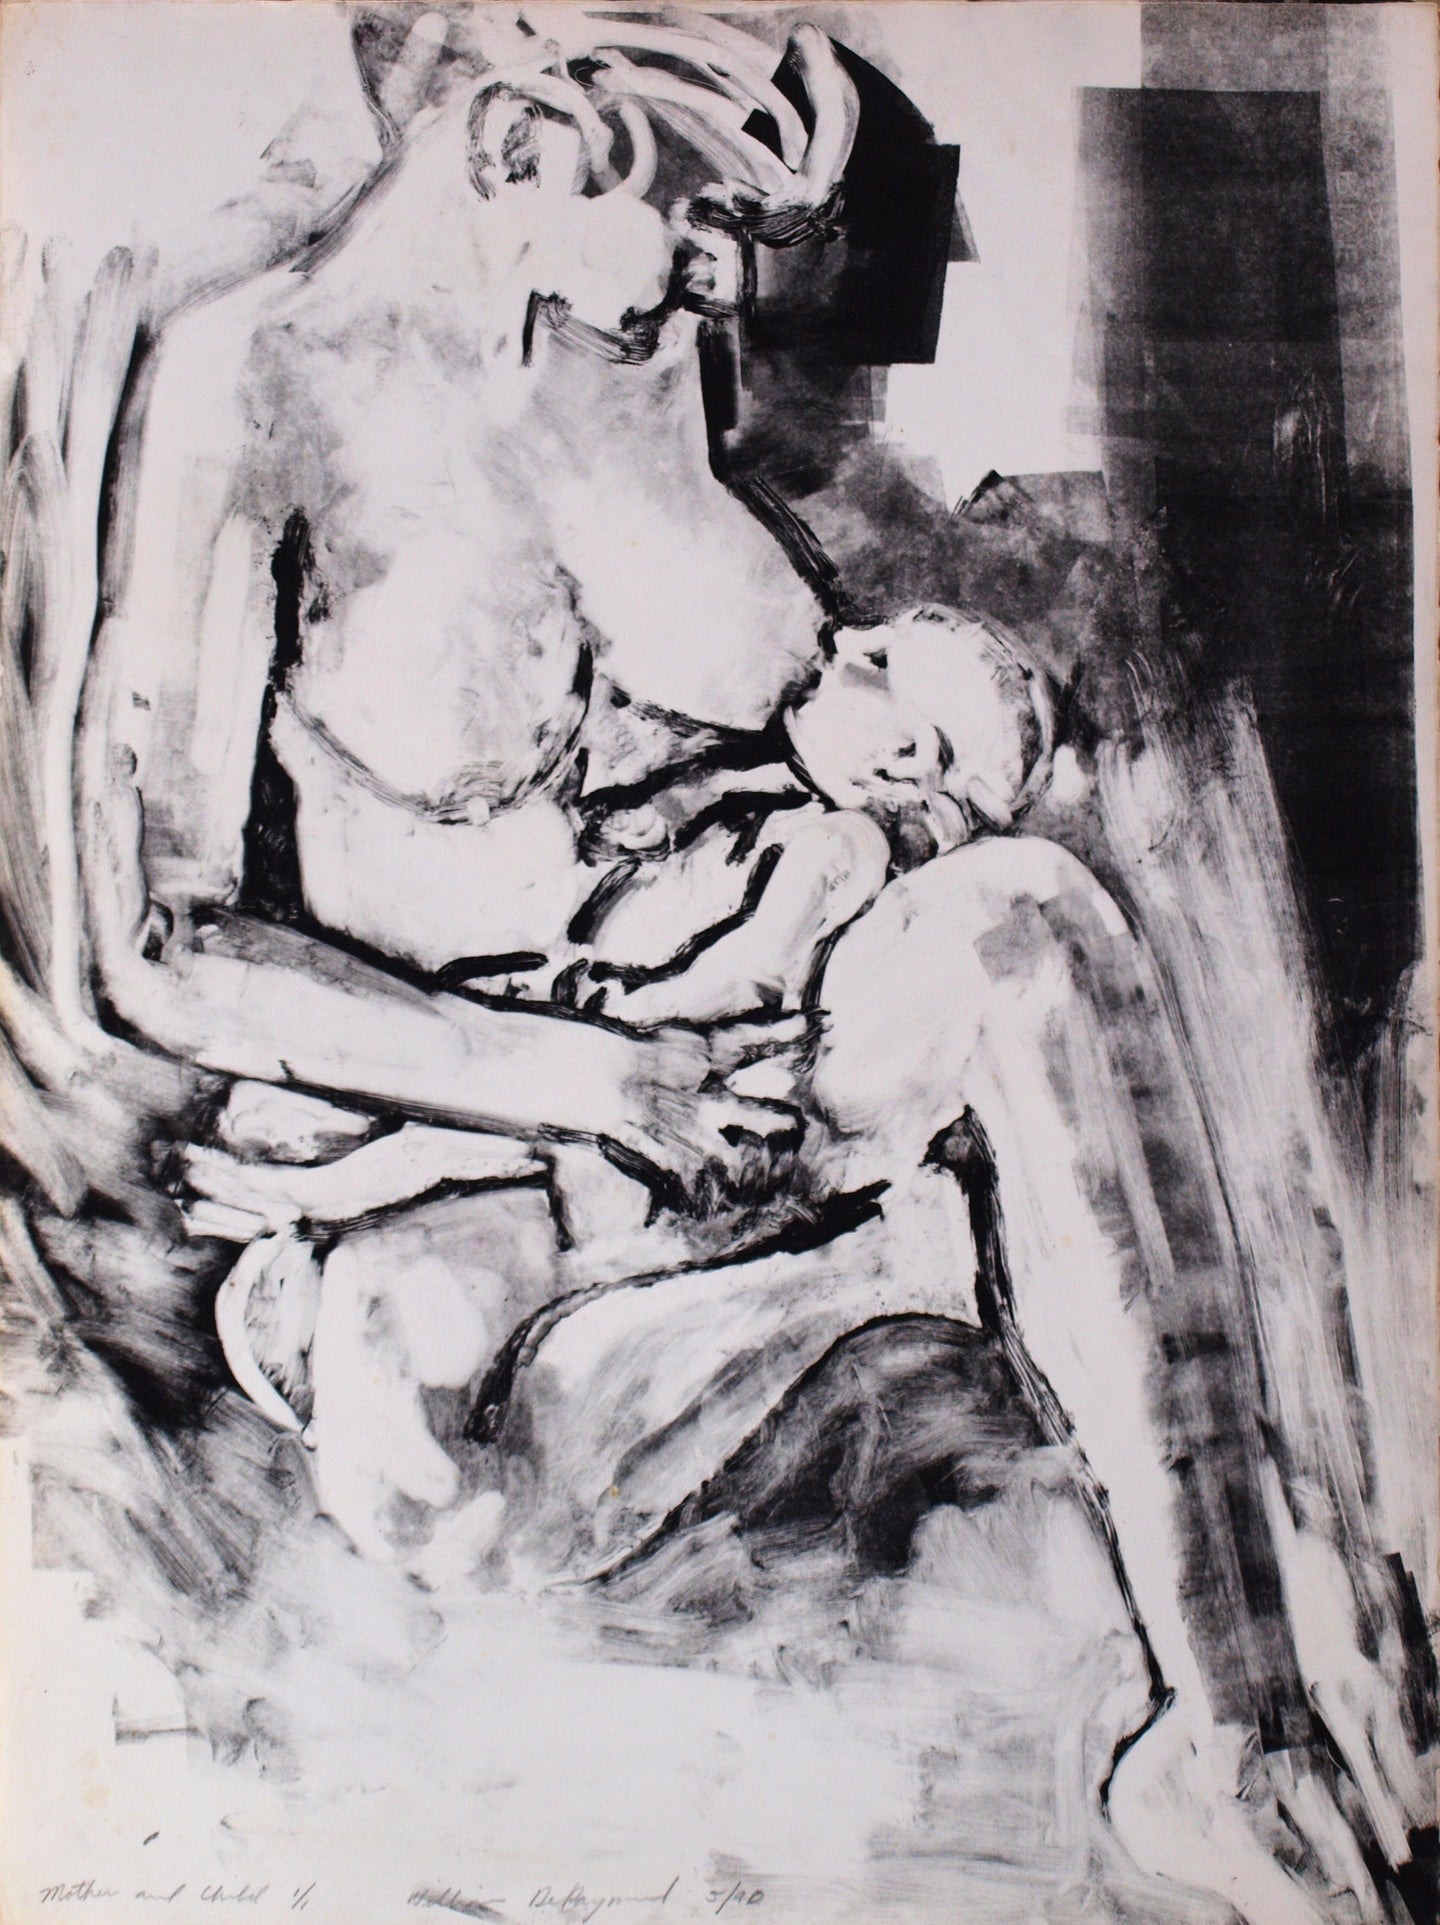 mother and child, #monoprint #printmaking #art 22